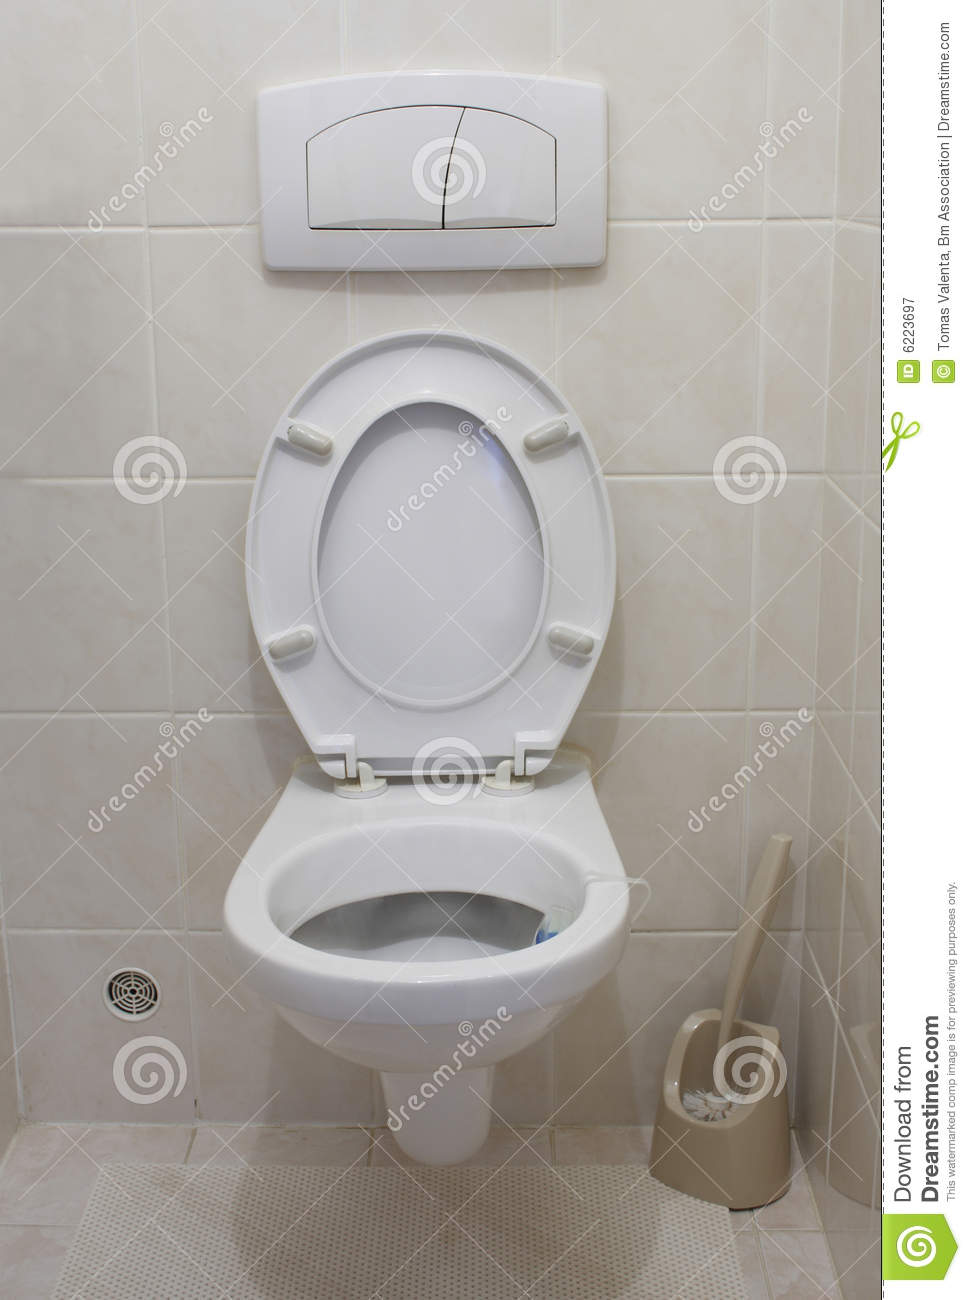 Wc royalty free stock photography image 6223697 - Object deco wc ...